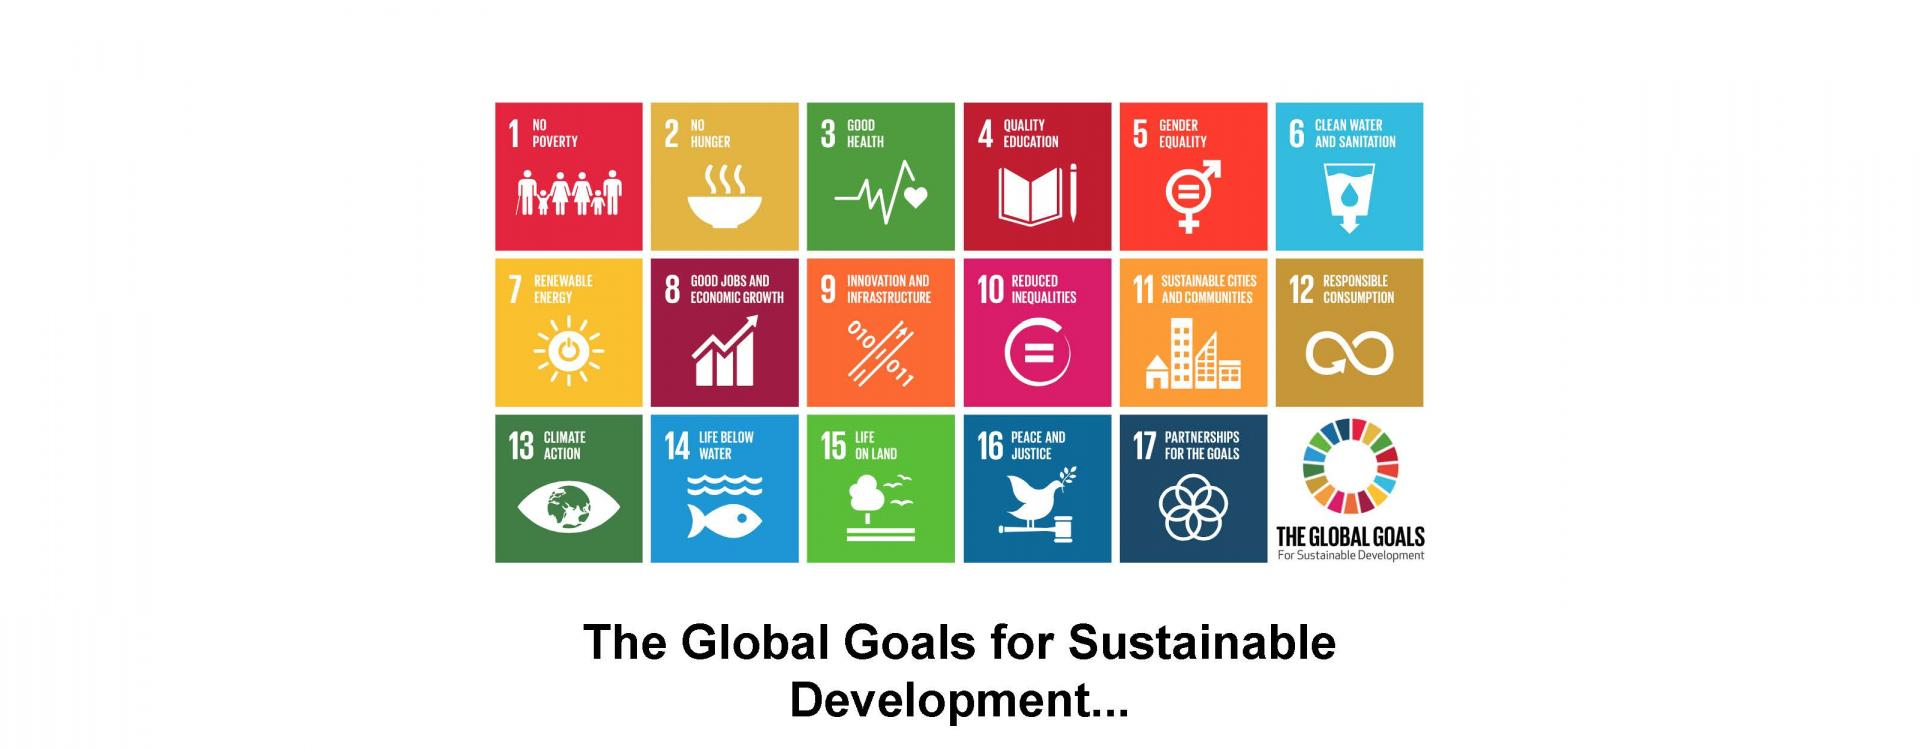 The Global Goals for Sustainable Development...